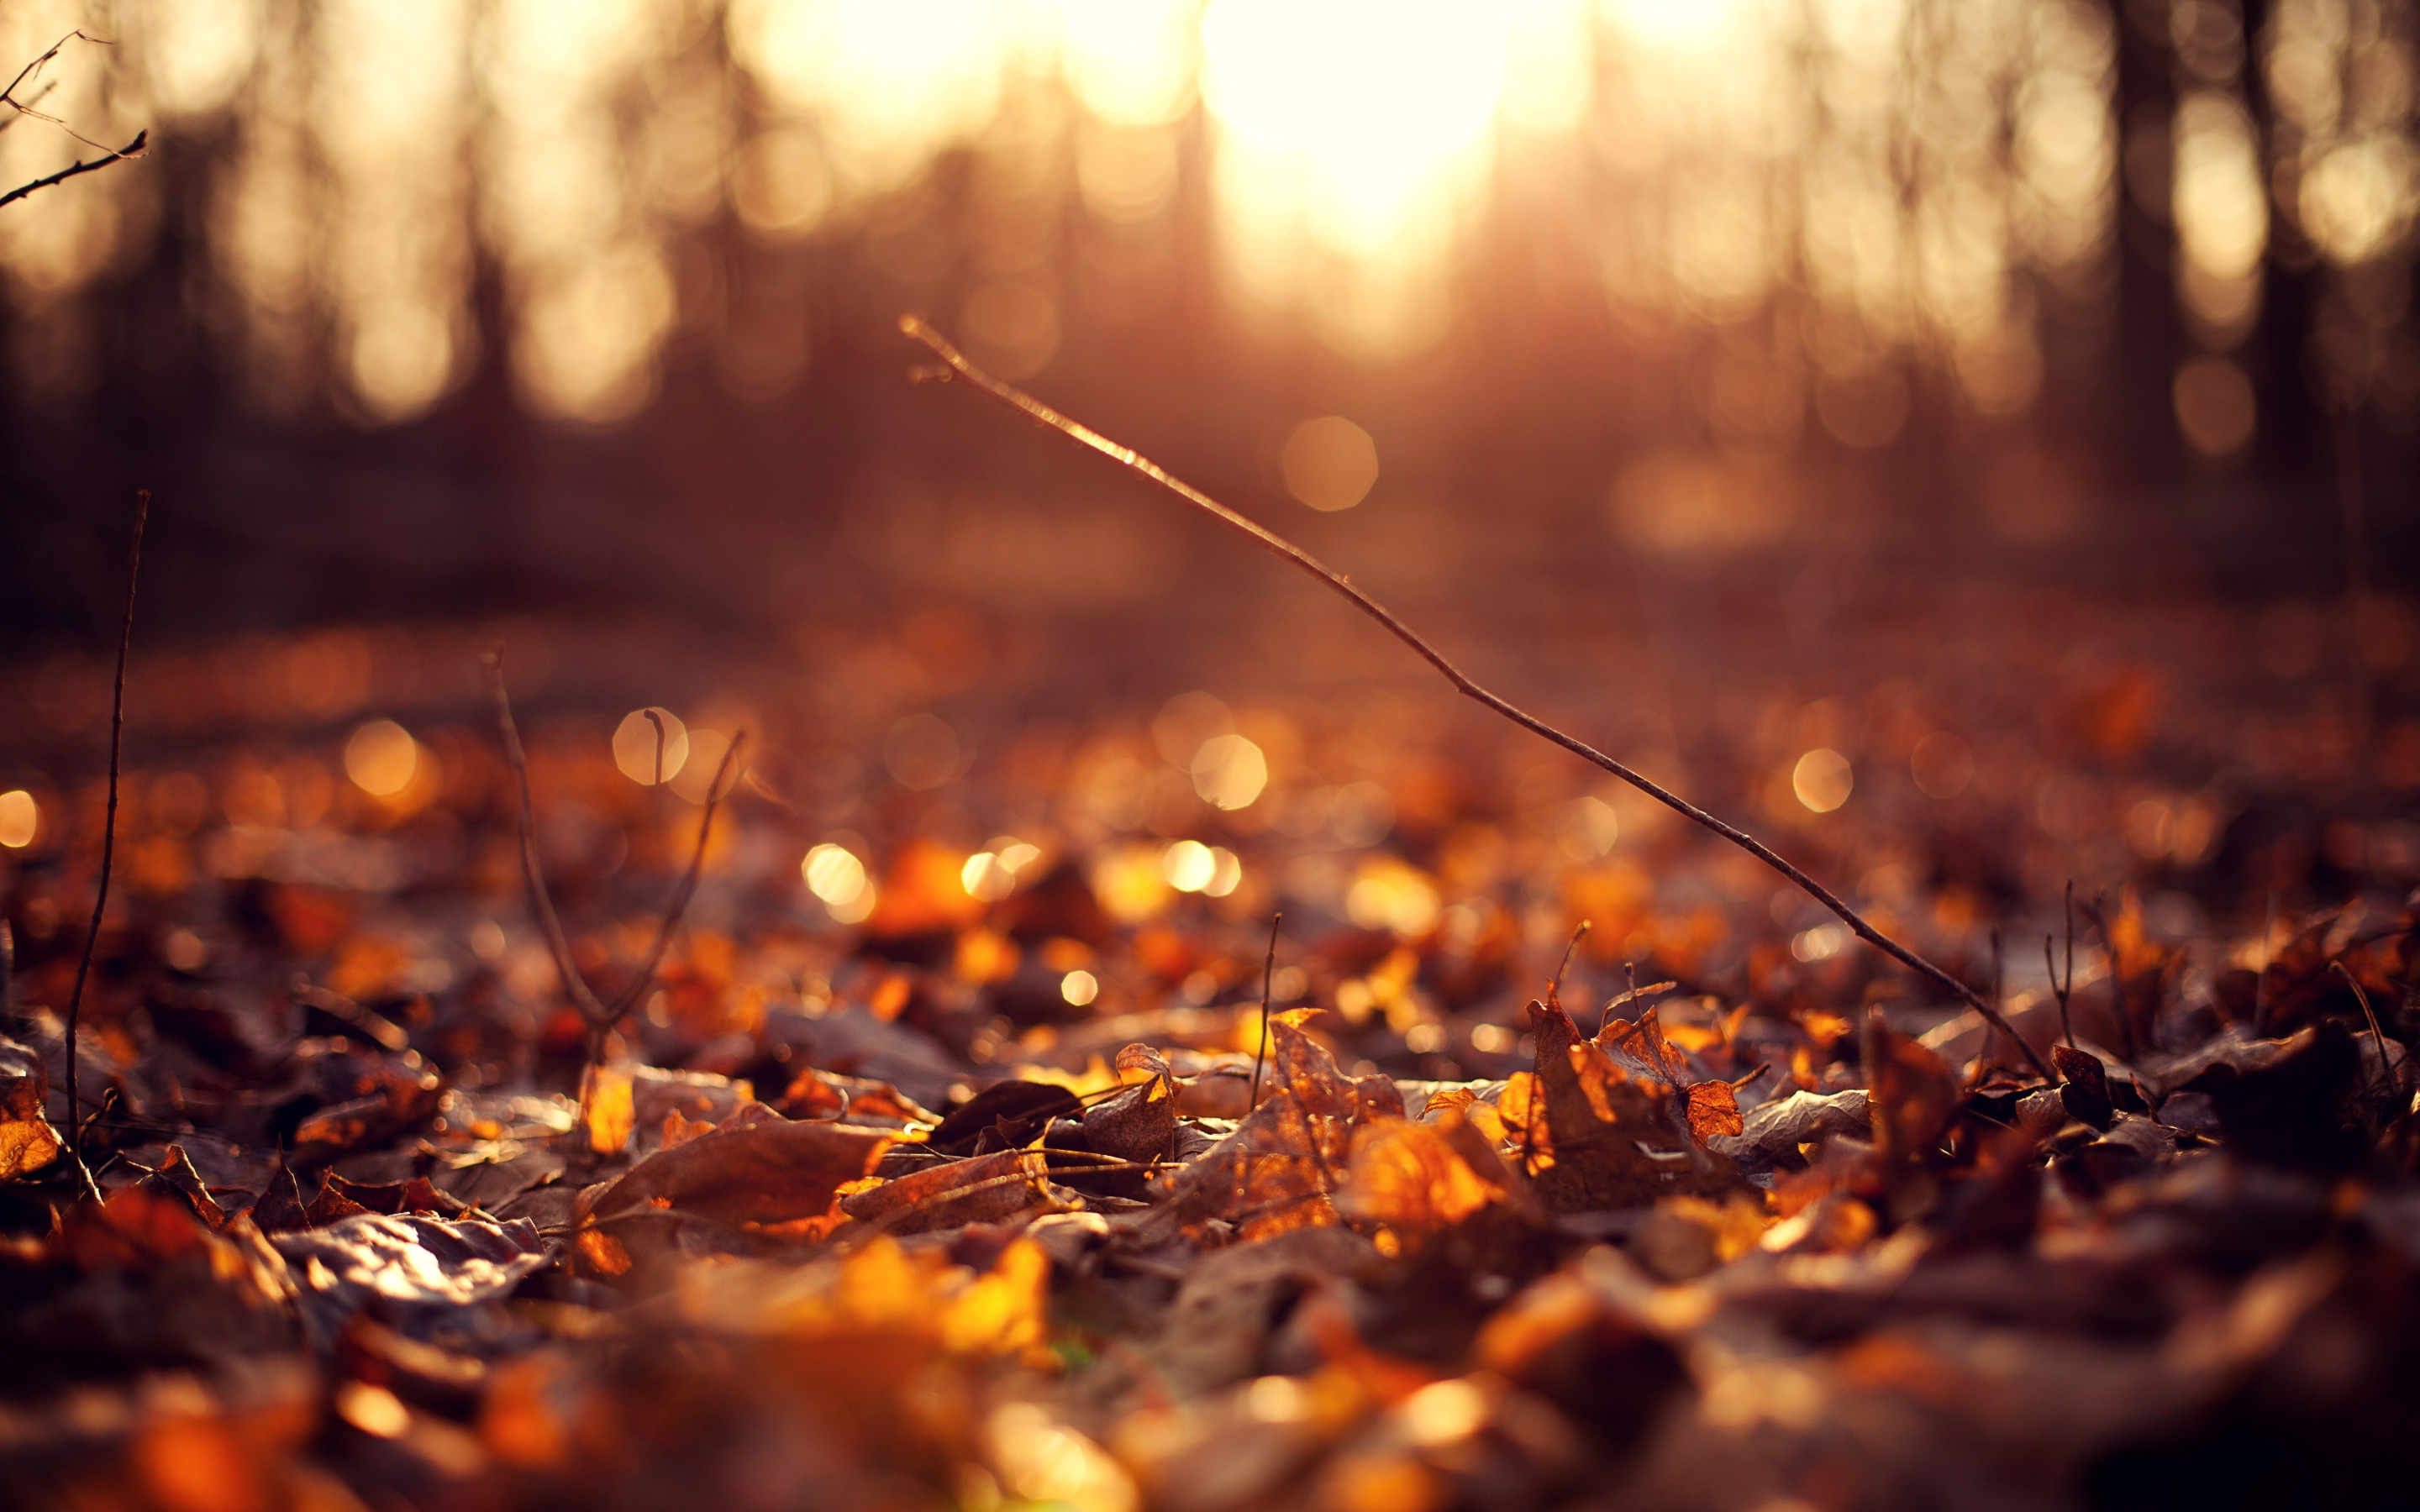 Autumn Sunsets Png Backgrounds - Free Autumn Leaves, Download Free Clip Art, Free Clip Art on ...